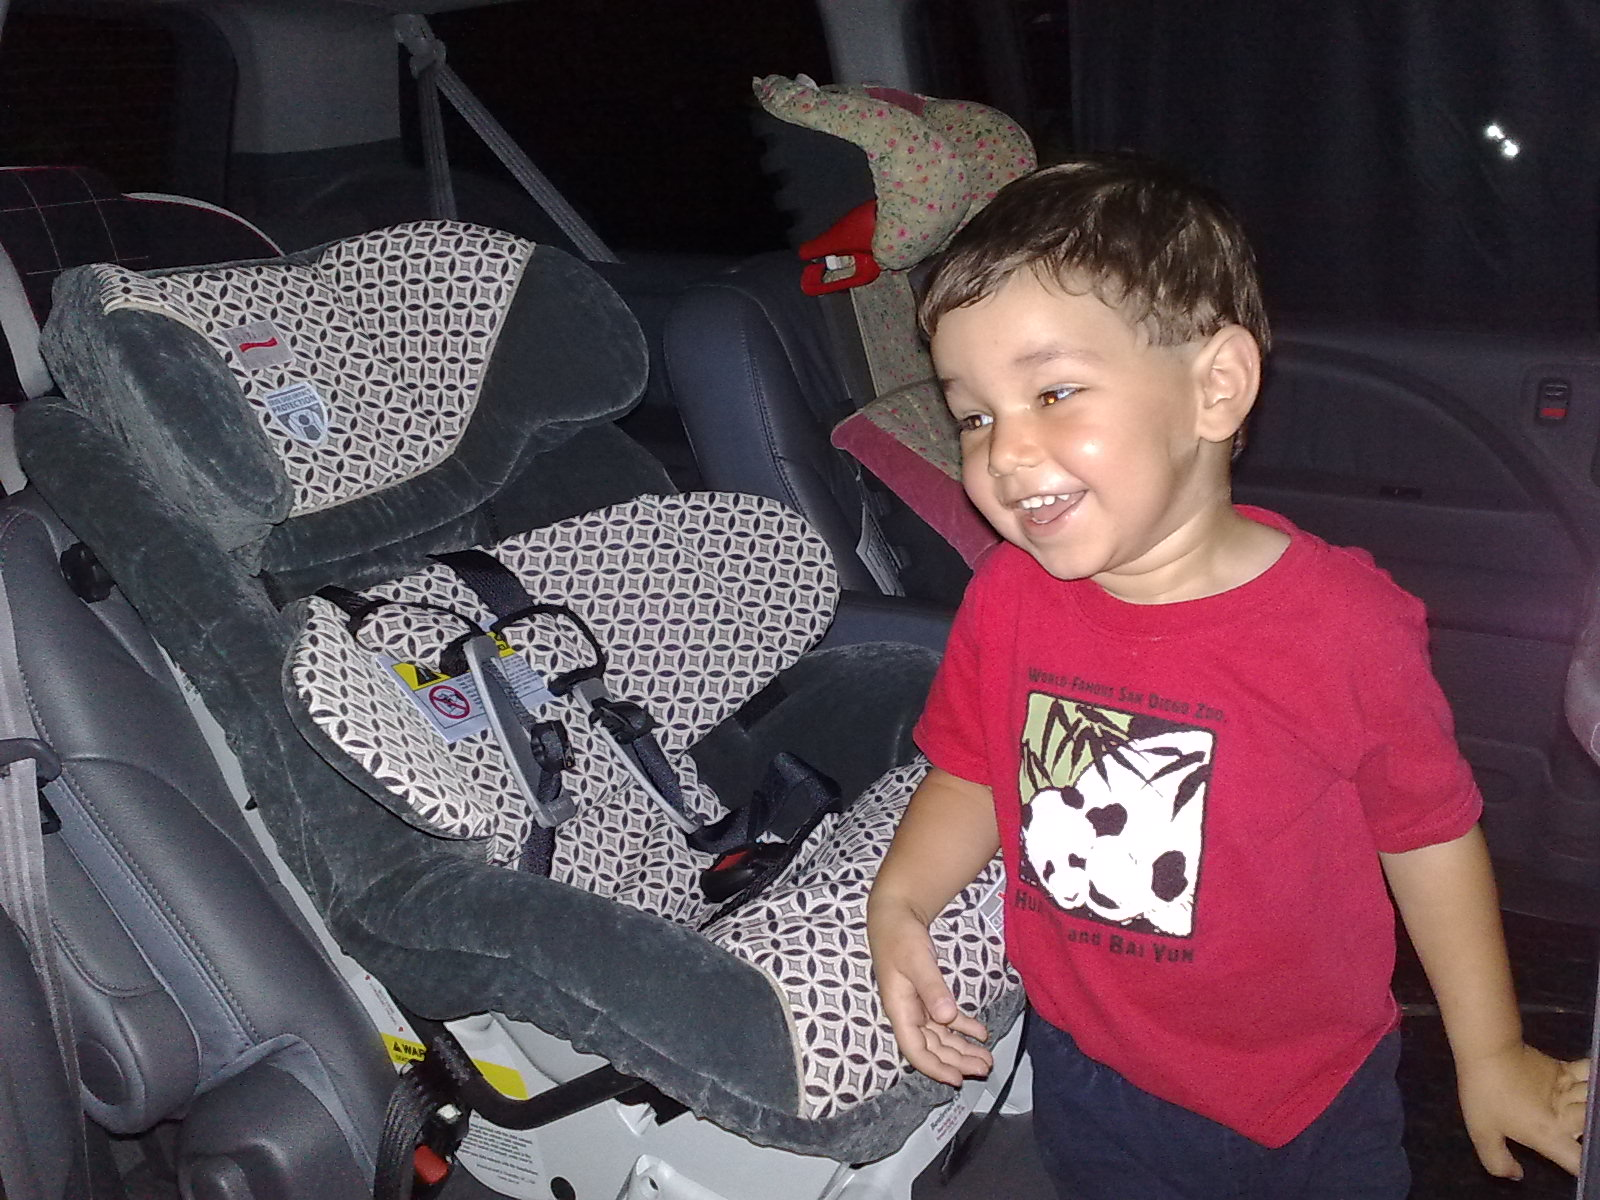 Carseatblog com it s not just for carseats any more i didn t really need a new phone but for a couple years i ve been trying to find something that would